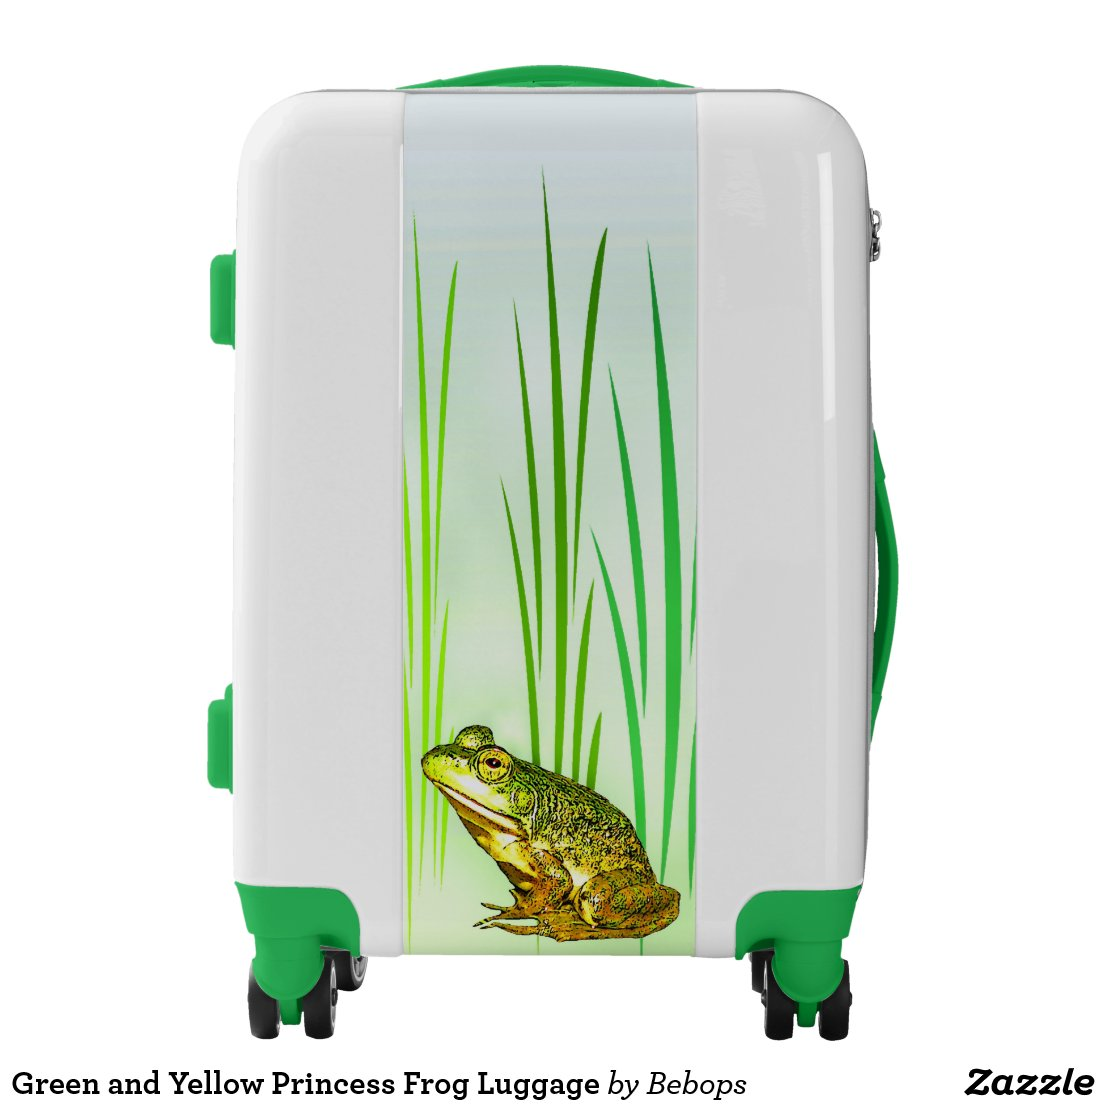 Green and Yellow Princess Frog Luggage